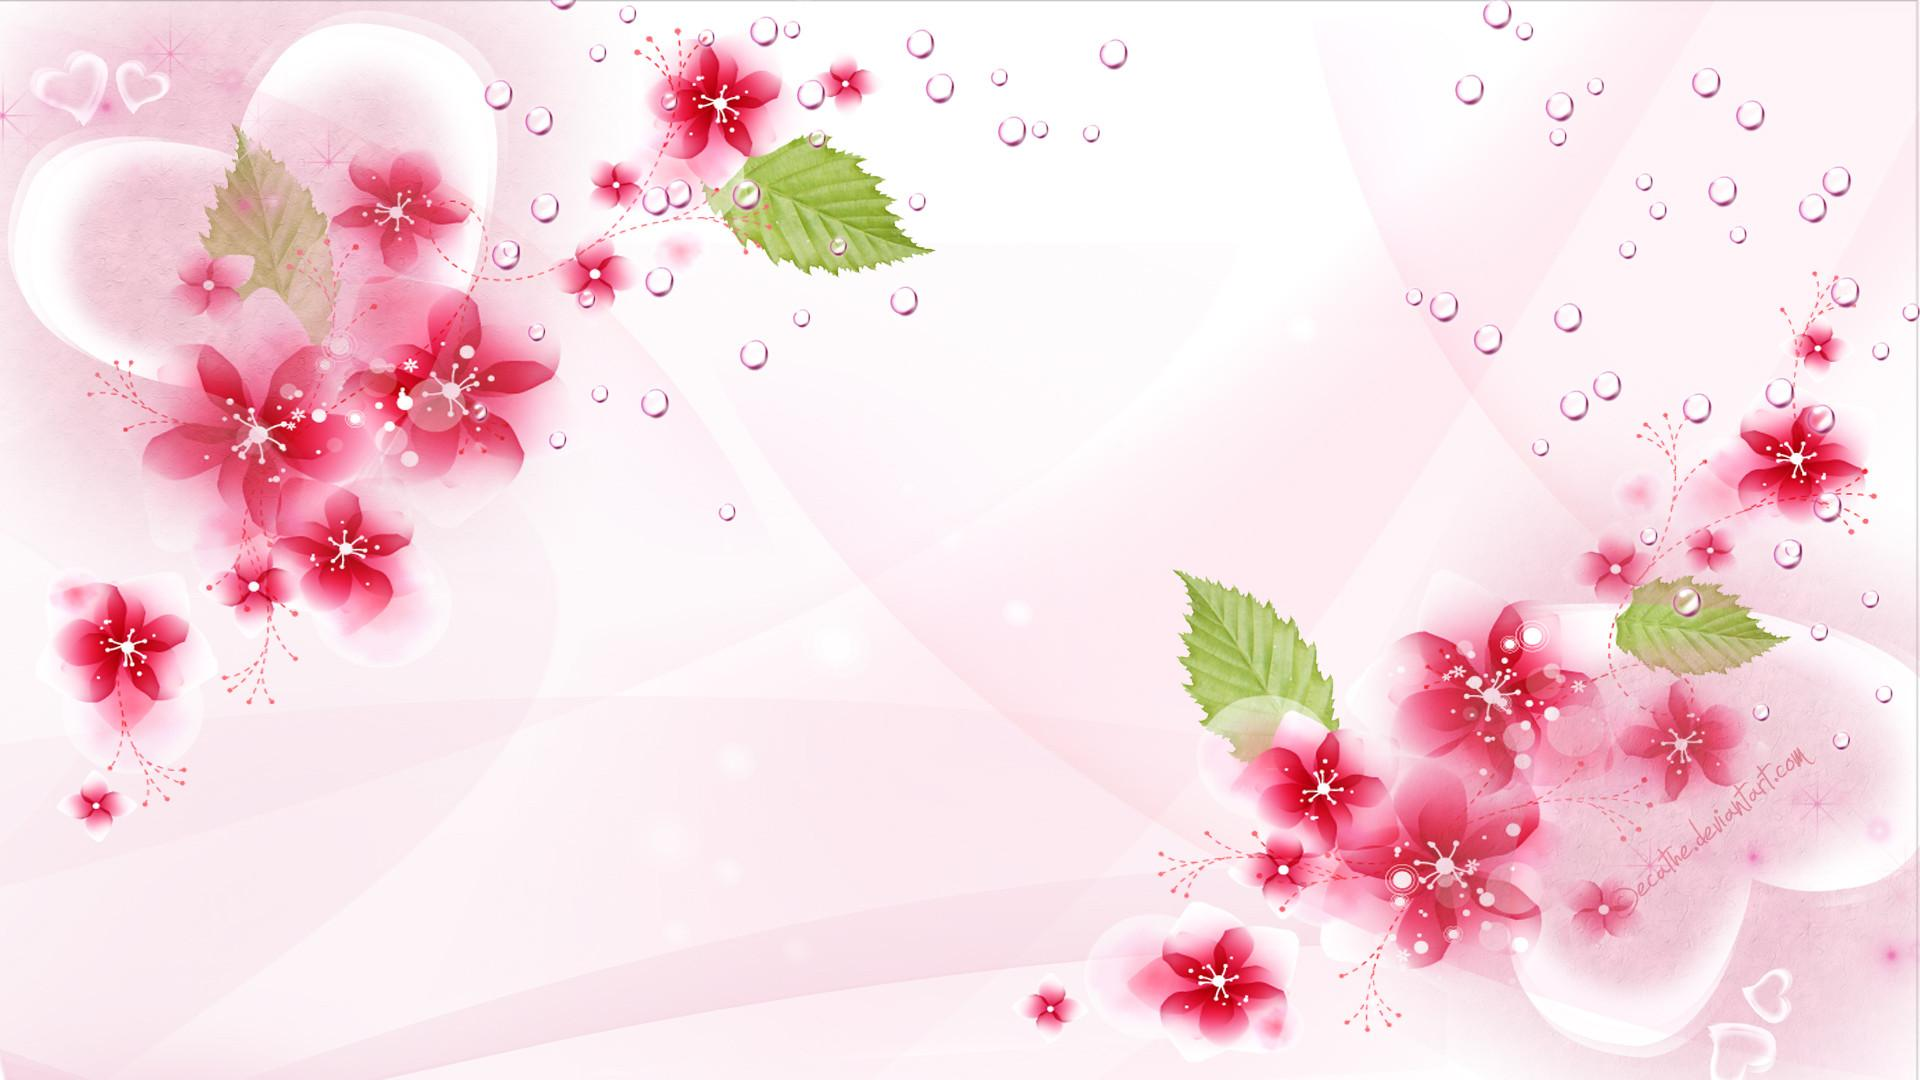 Background Wallpaper Flowers.